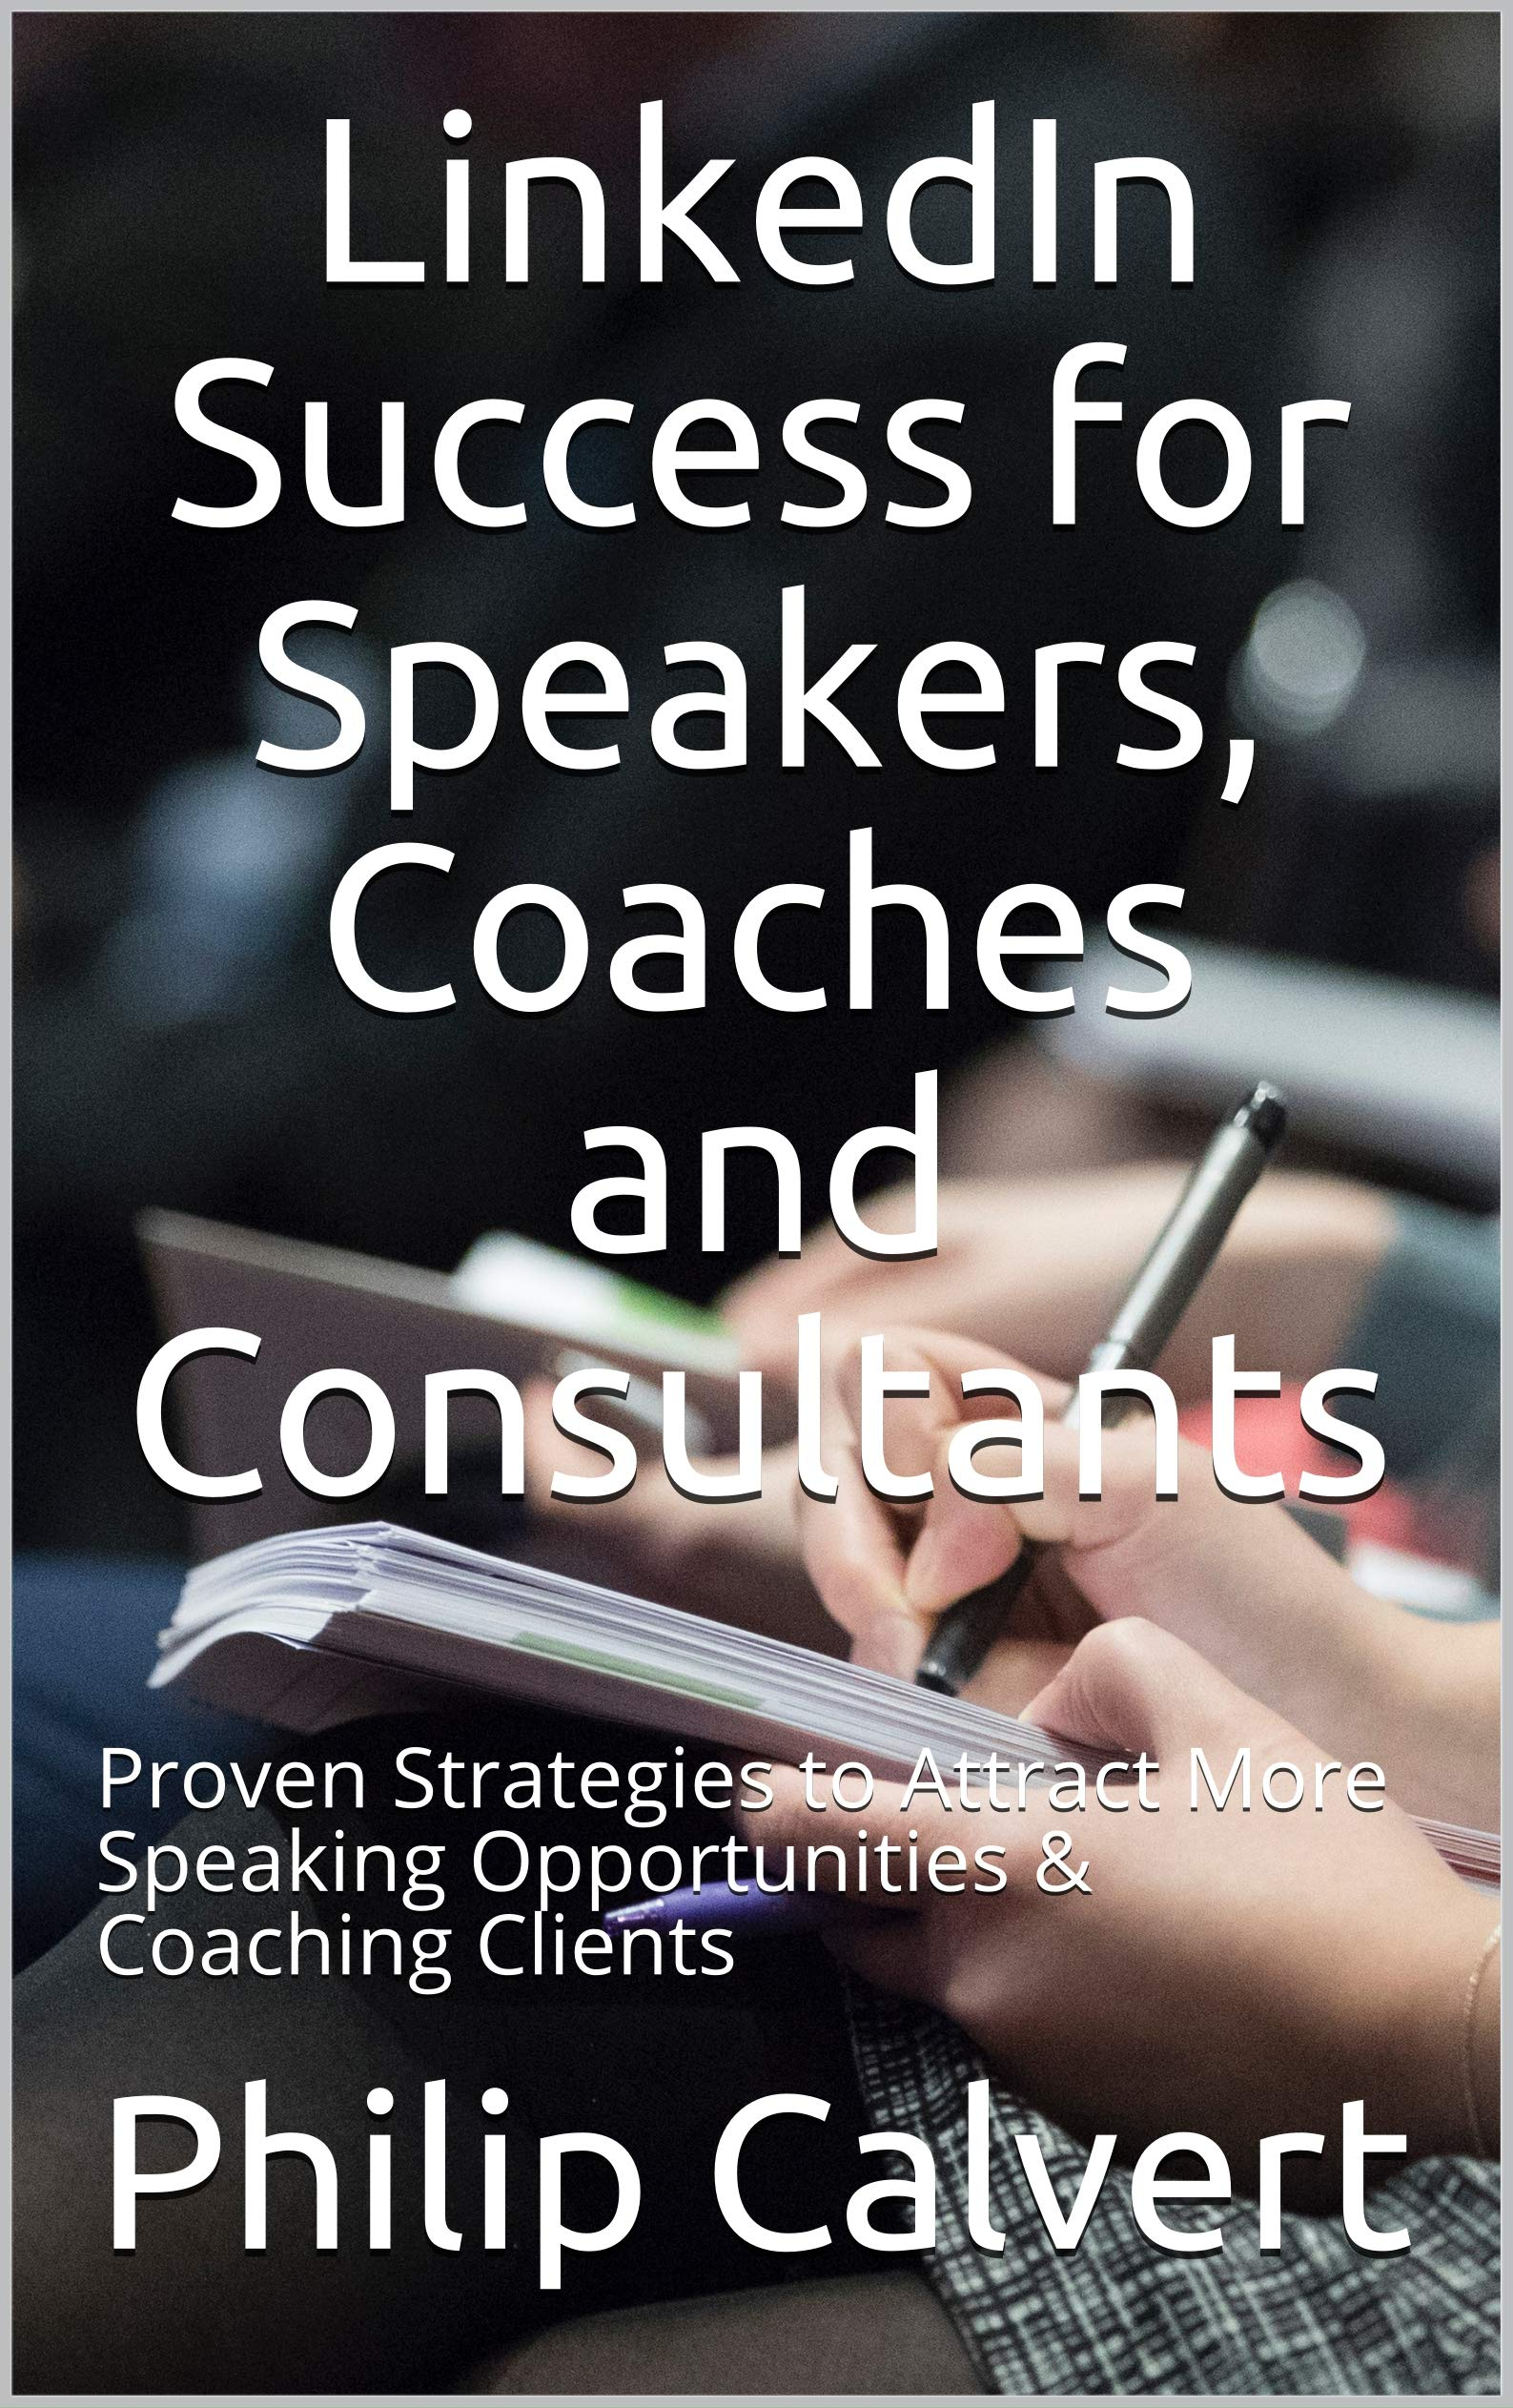 LinkedIn Success for Speakers, Coaches and Consultants: Proven Strategies to Attract More Speaking Opportunities & Coaching Clients